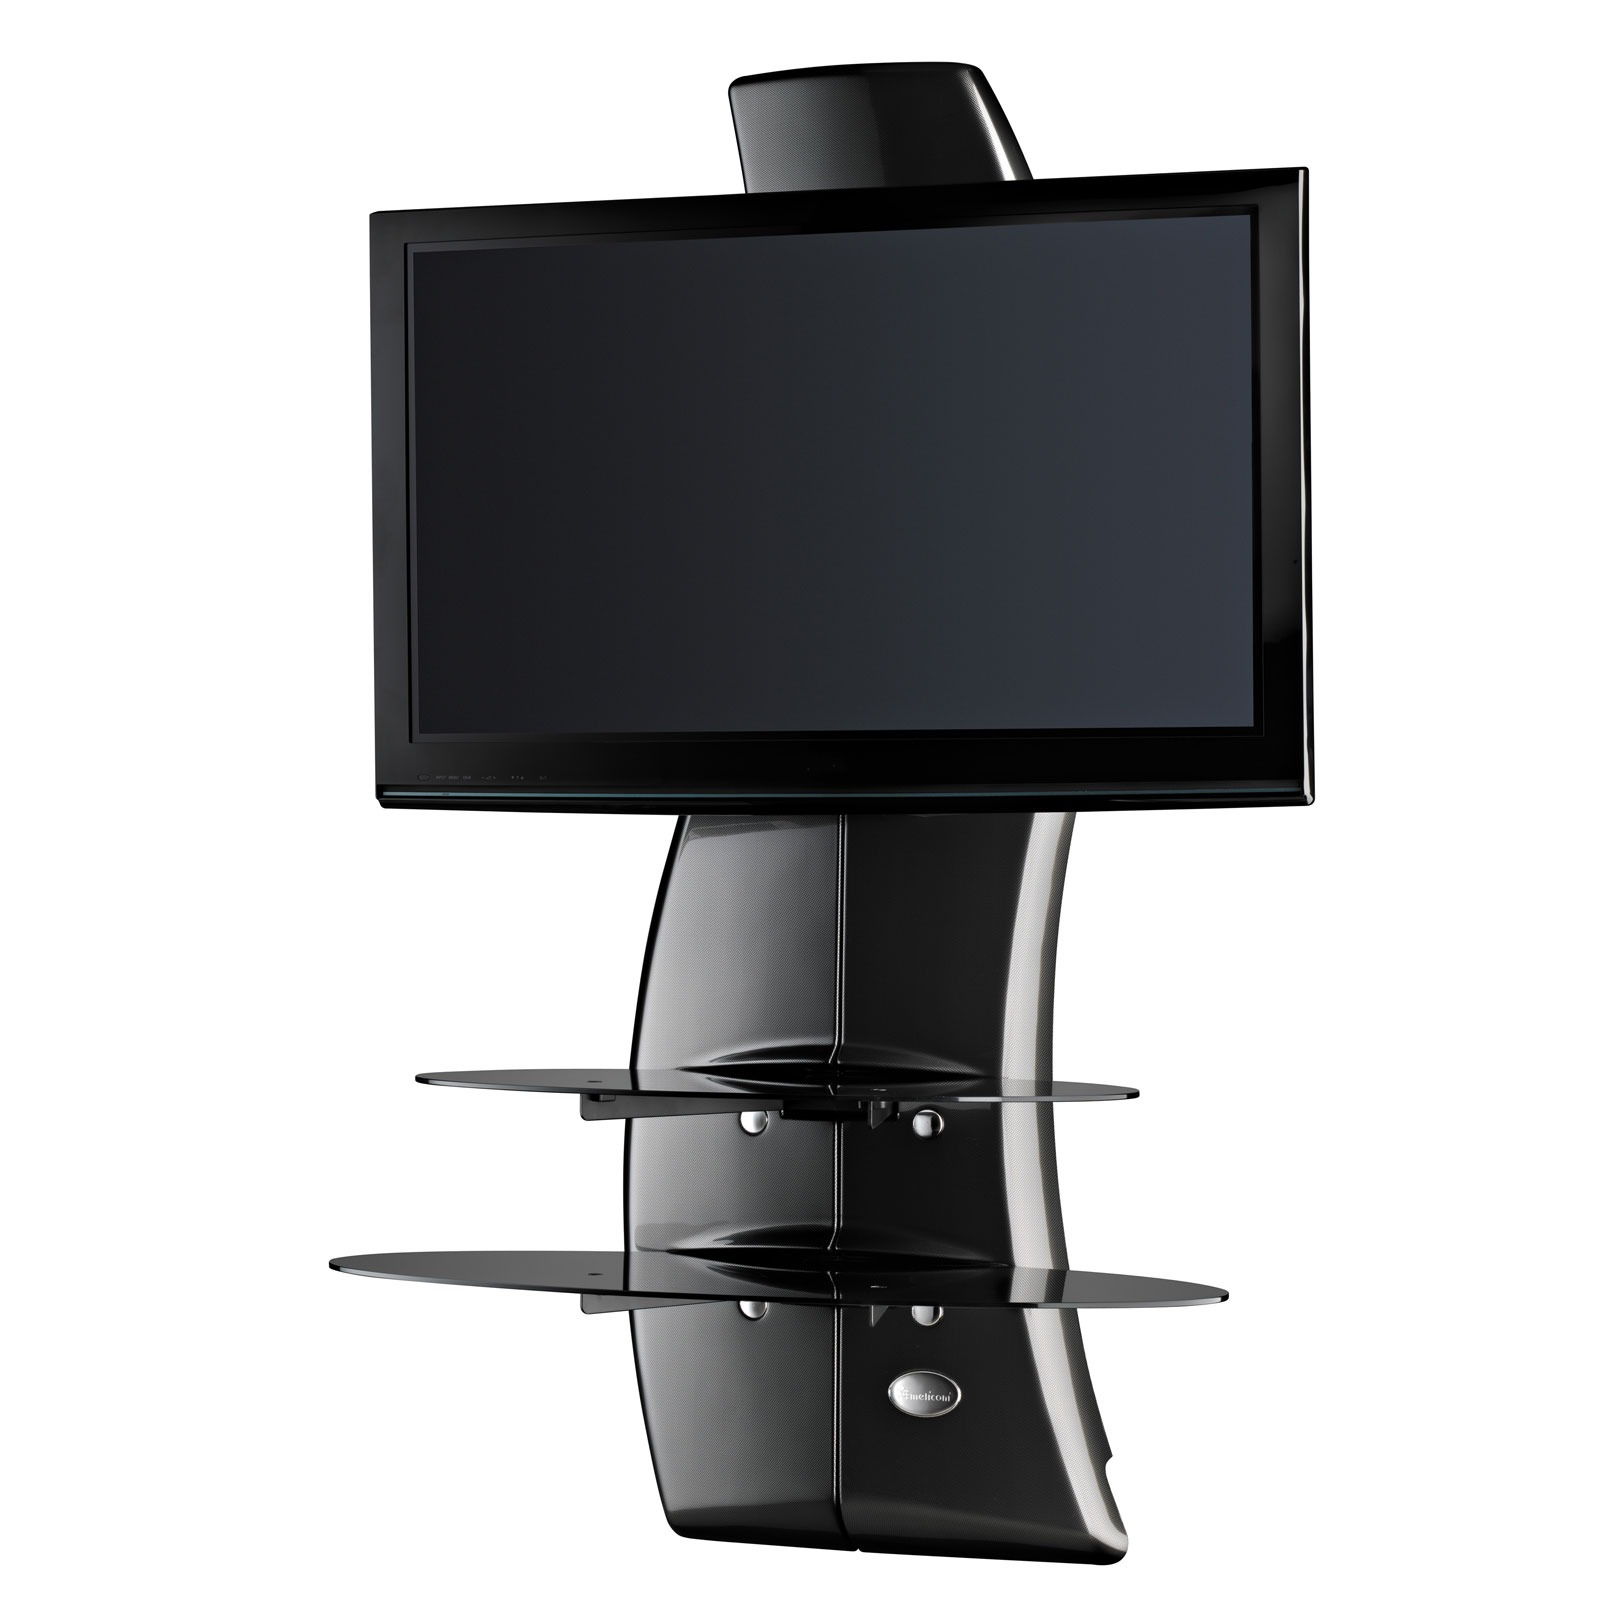 Meliconi Ghost Design 2000 Meuble Tv Meliconi Sur Ldlc Com # Photos Catalogues Table Tv Ecrans Plat